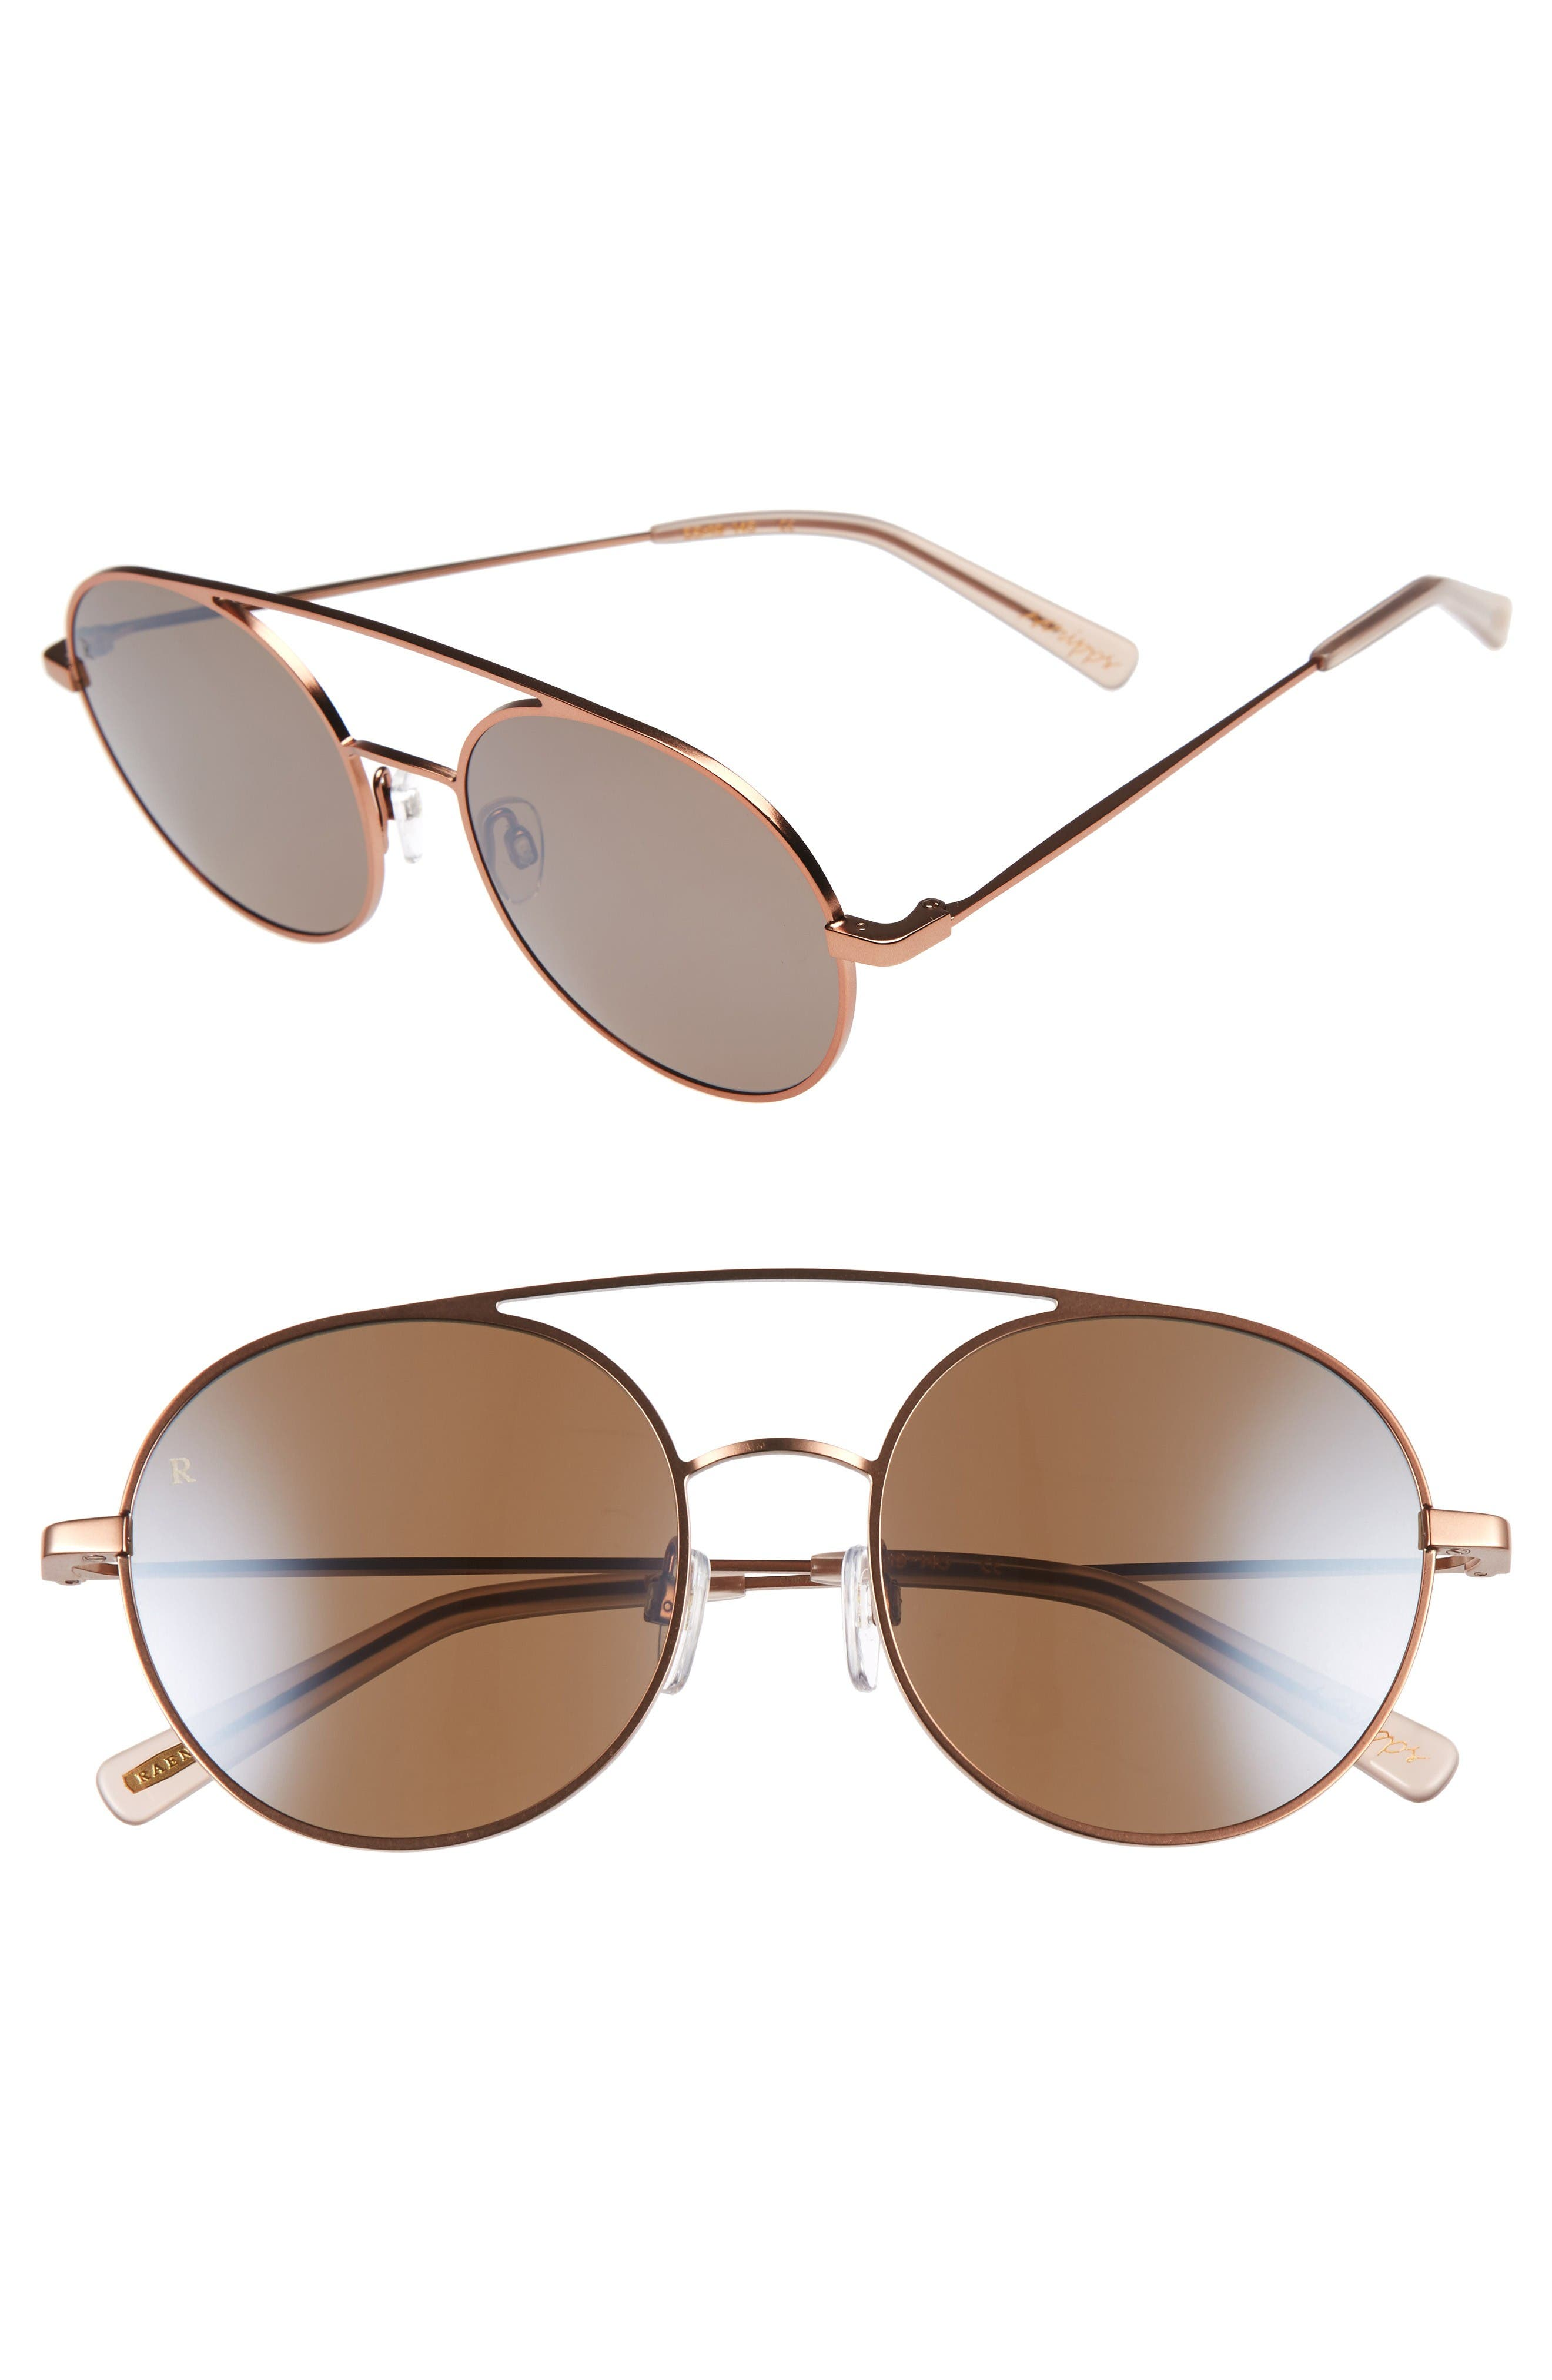 Scripps 55mm Round Sunglasses,                         Main,                         color, Rose Gold/ Flesh